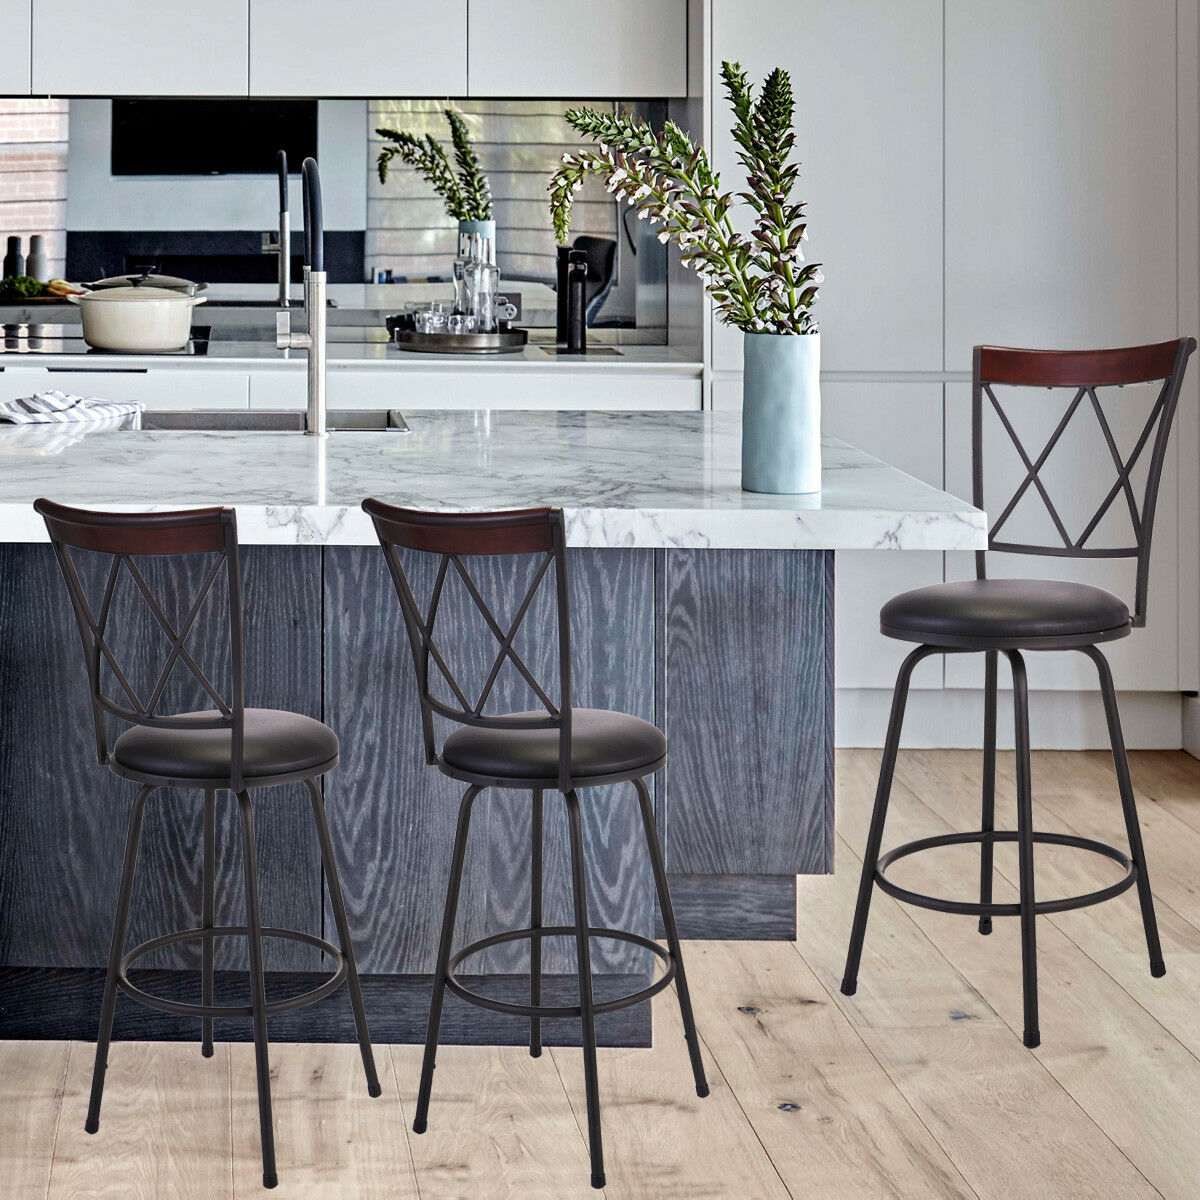 Four Black Metal Kitchen Counter Chairs For Sale Online Ebay